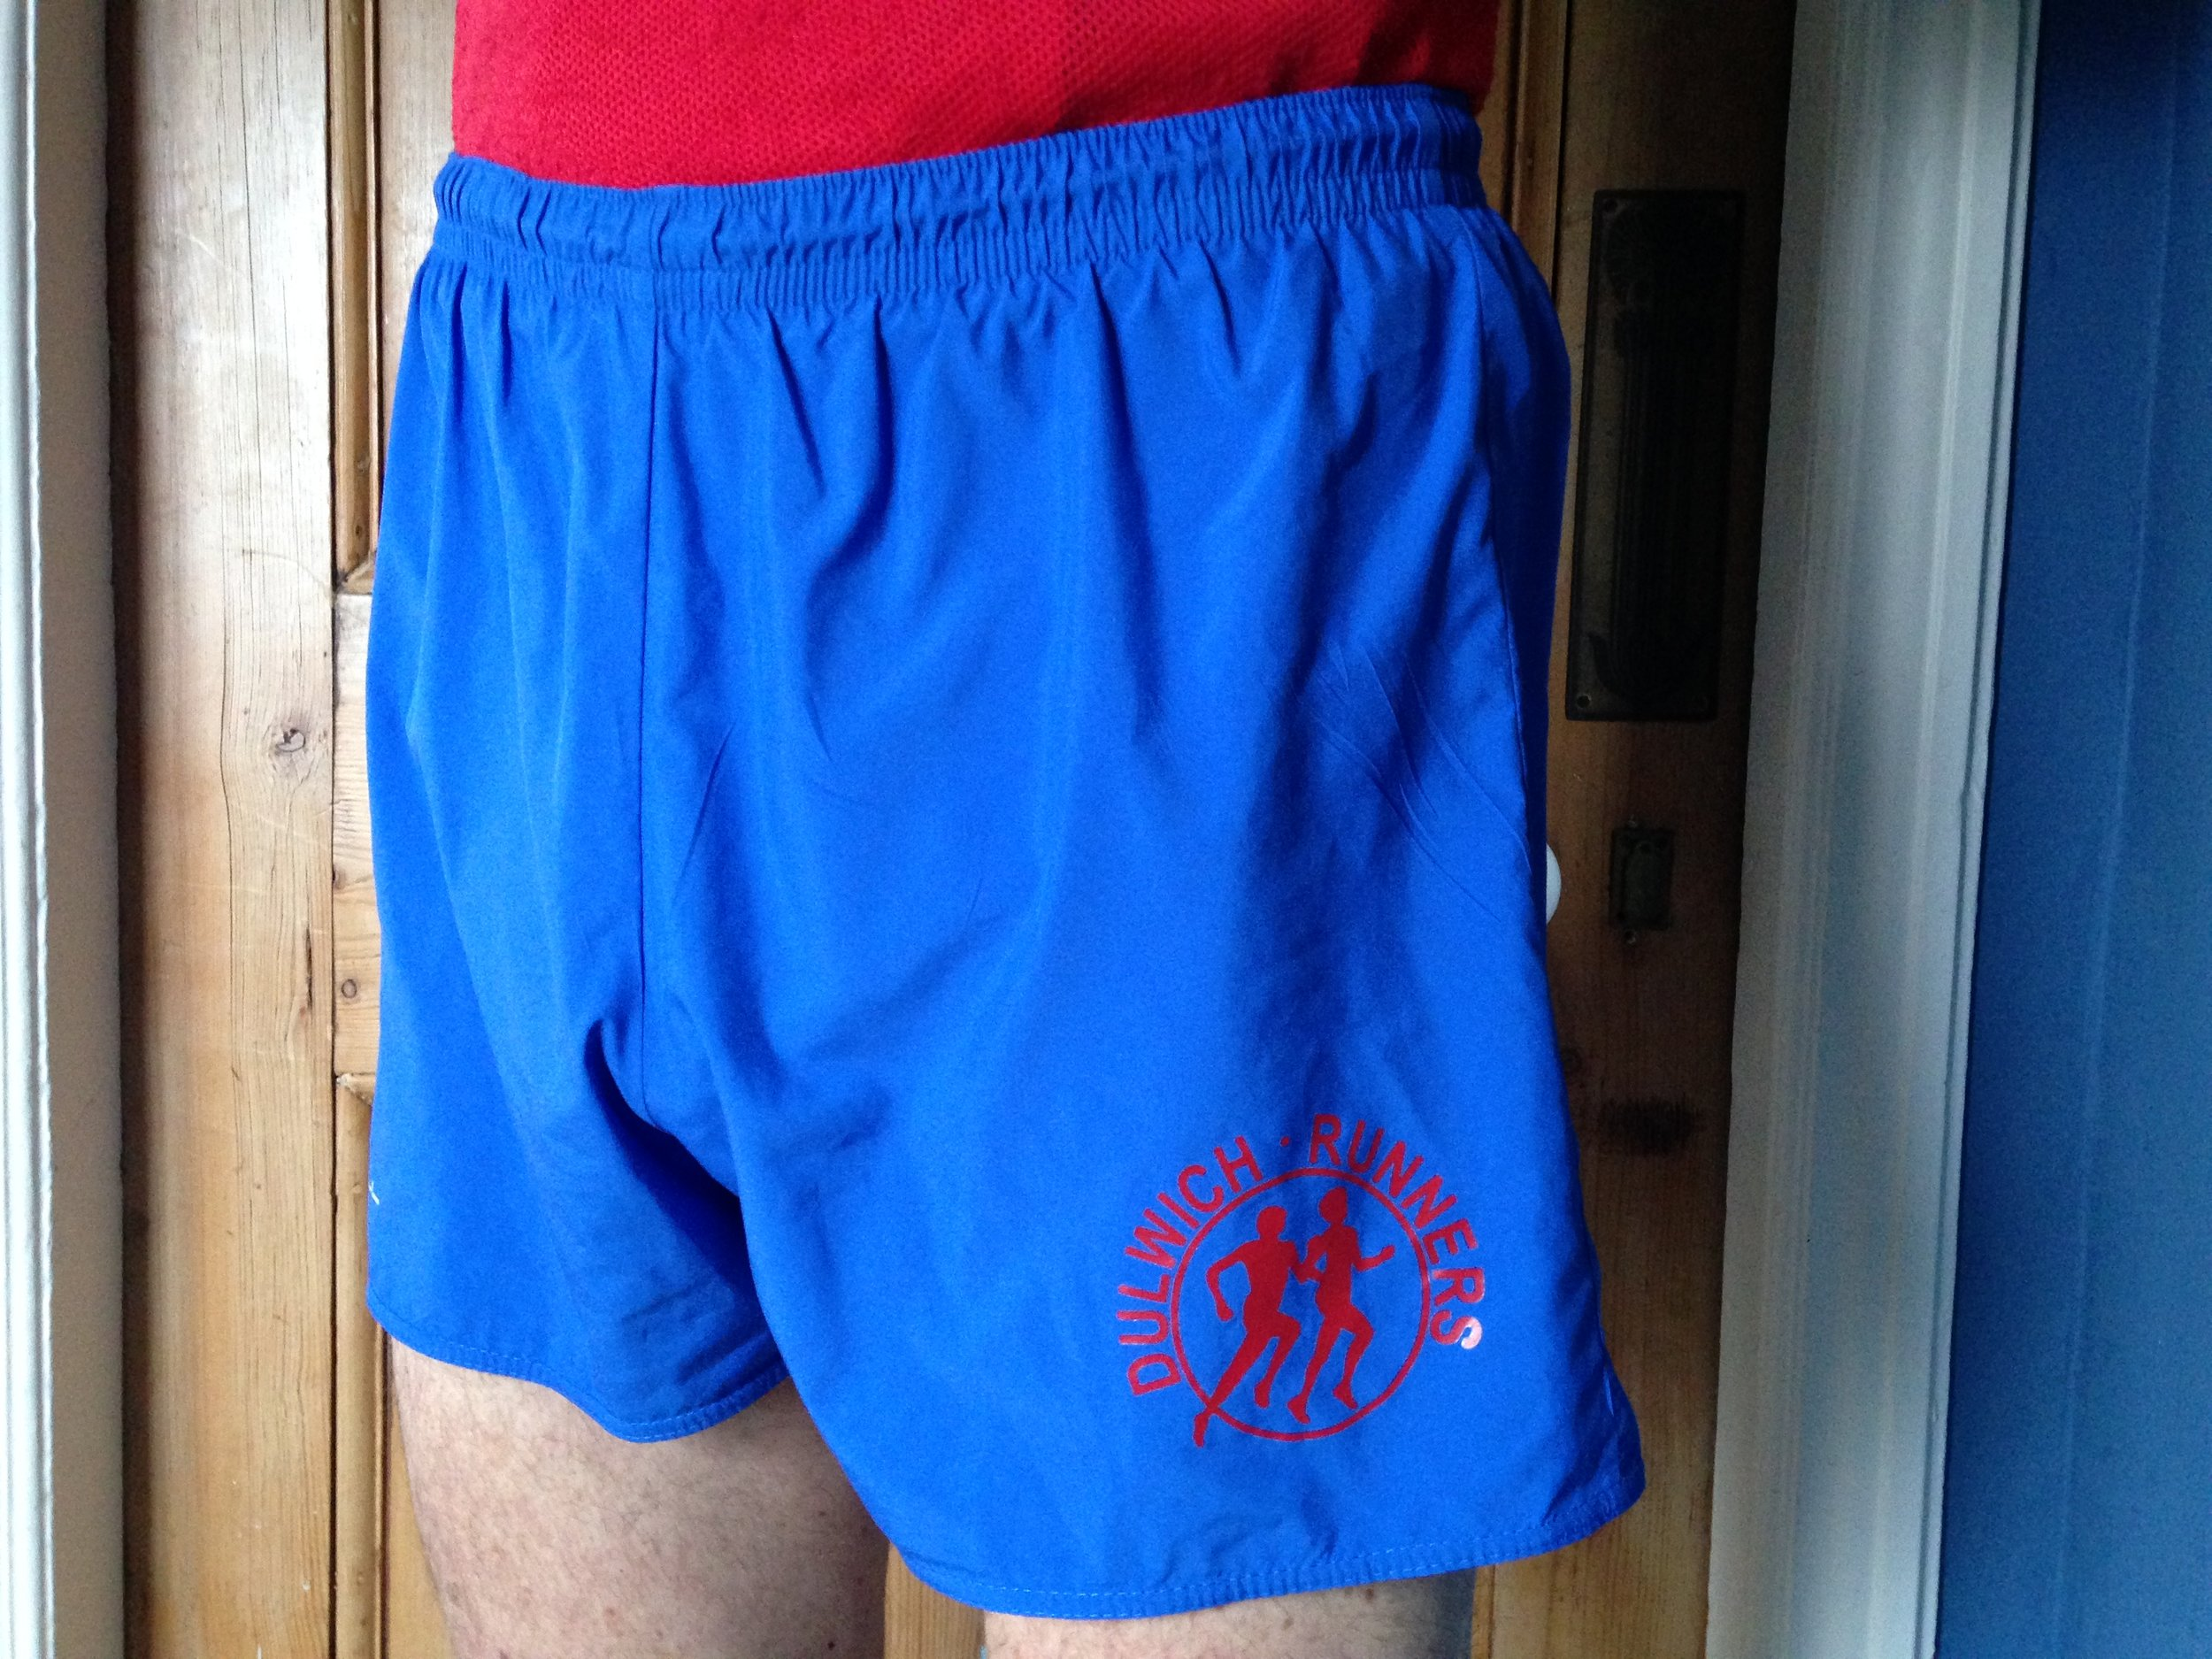 Shorts (including zip pocket) £15  Racing style also available at £15